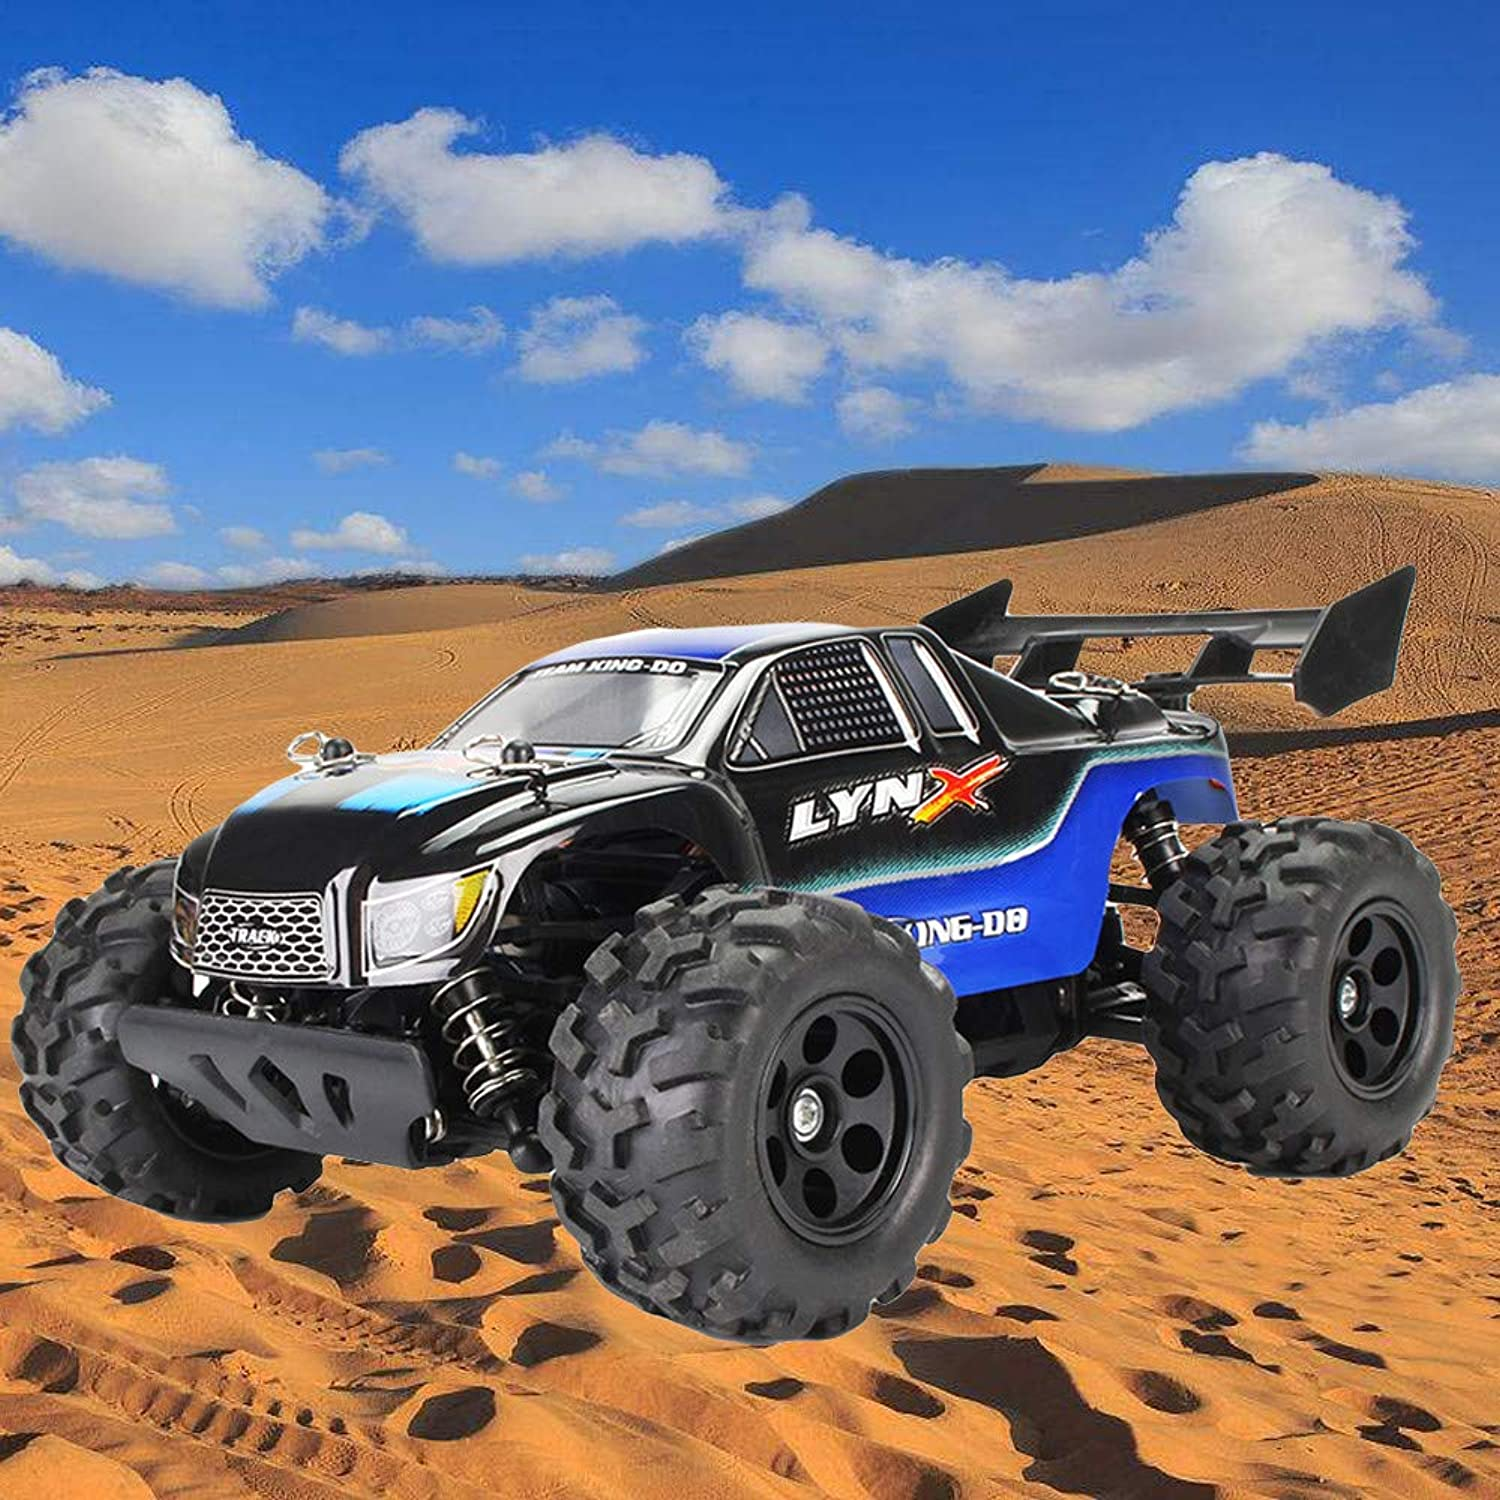 STYLEEA 1 22 Scale RC Car Off Road Vehicle 2.4G Radio Remote Control Car Racing